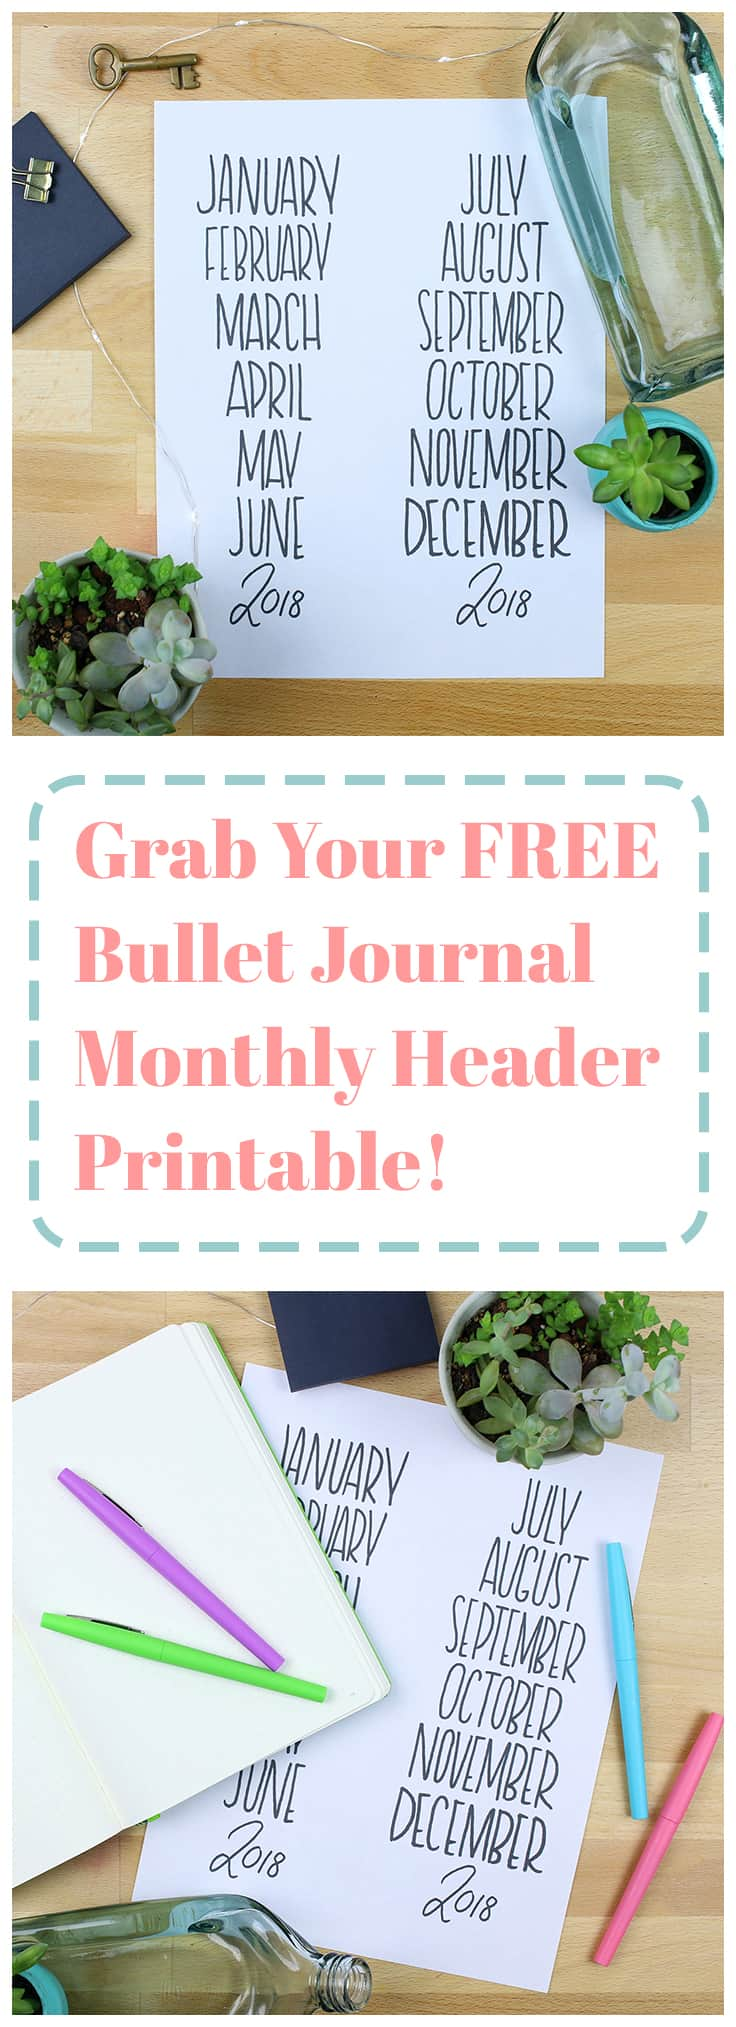 Want to grab a super cute new bullet journal monthly header printable? Look no further! This printable can be used a ton of different ways depending on your needs, and you can use it forever!